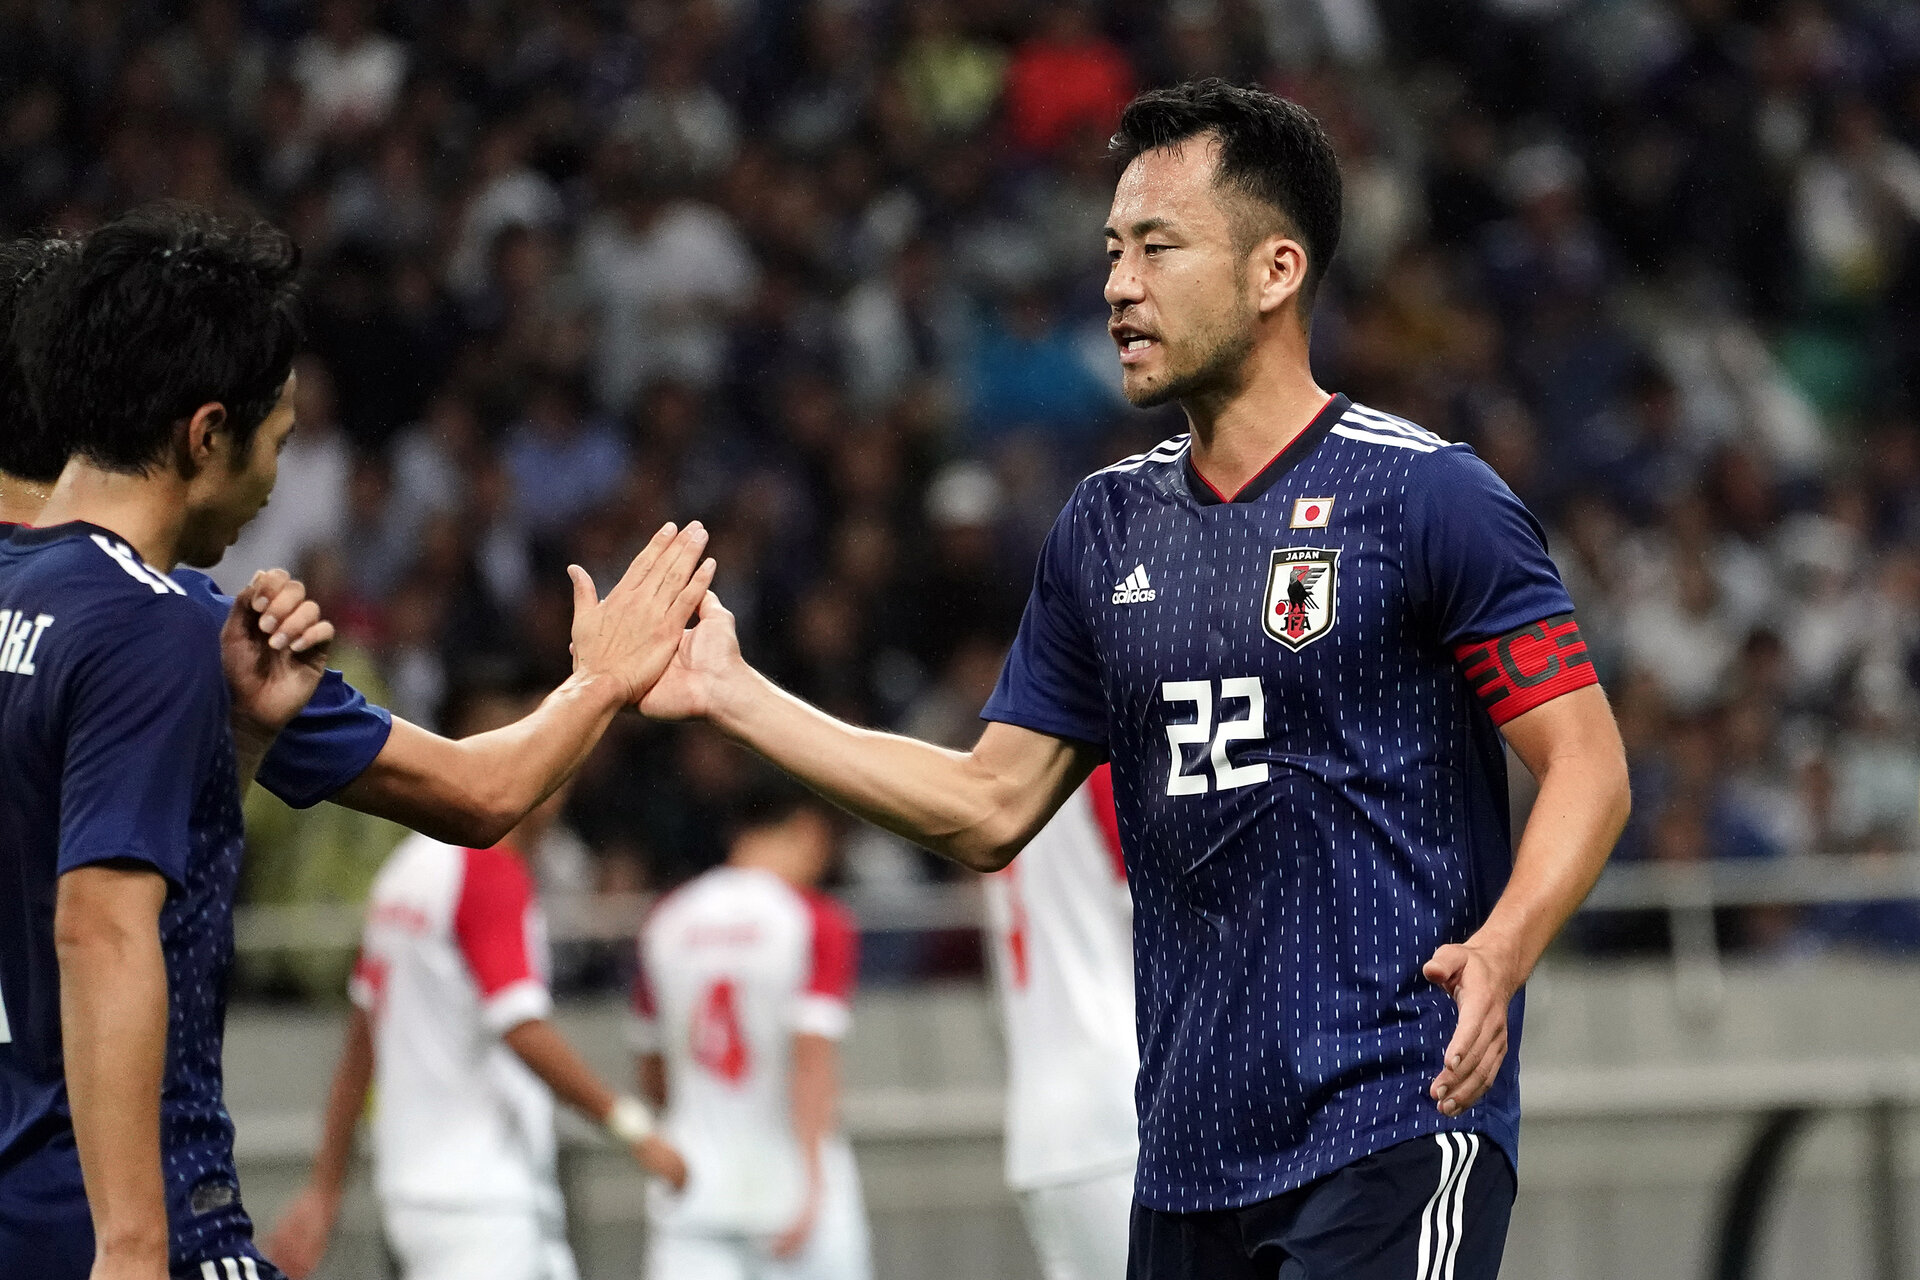 SAITAMA, JAPAN - OCTOBER 10: Maya Yoshida #22 of Japan celebrates after scoring his team`s sixth goal during the FIFA World Cup Asian Qualifier second round match between Japan and Mongolia at Saitama Stadium on October 10, 2019 in Saitama, Japan. (Photo by Koji Watanabe/Getty Images)